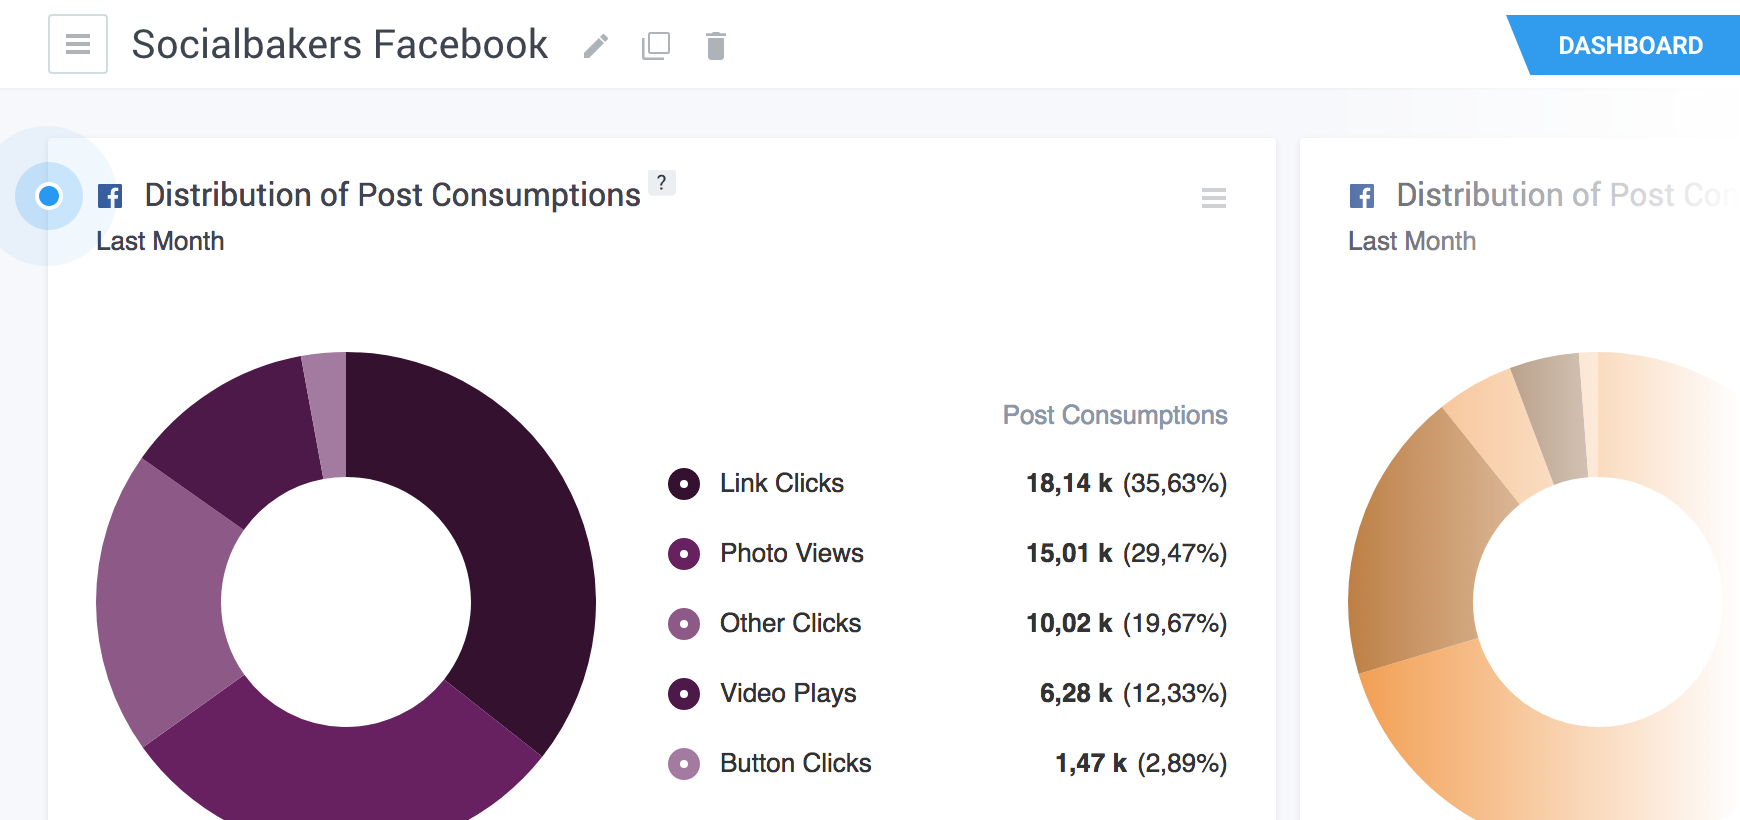 Dashboard_-_Distribution_of_Post_Consumption_2x.png